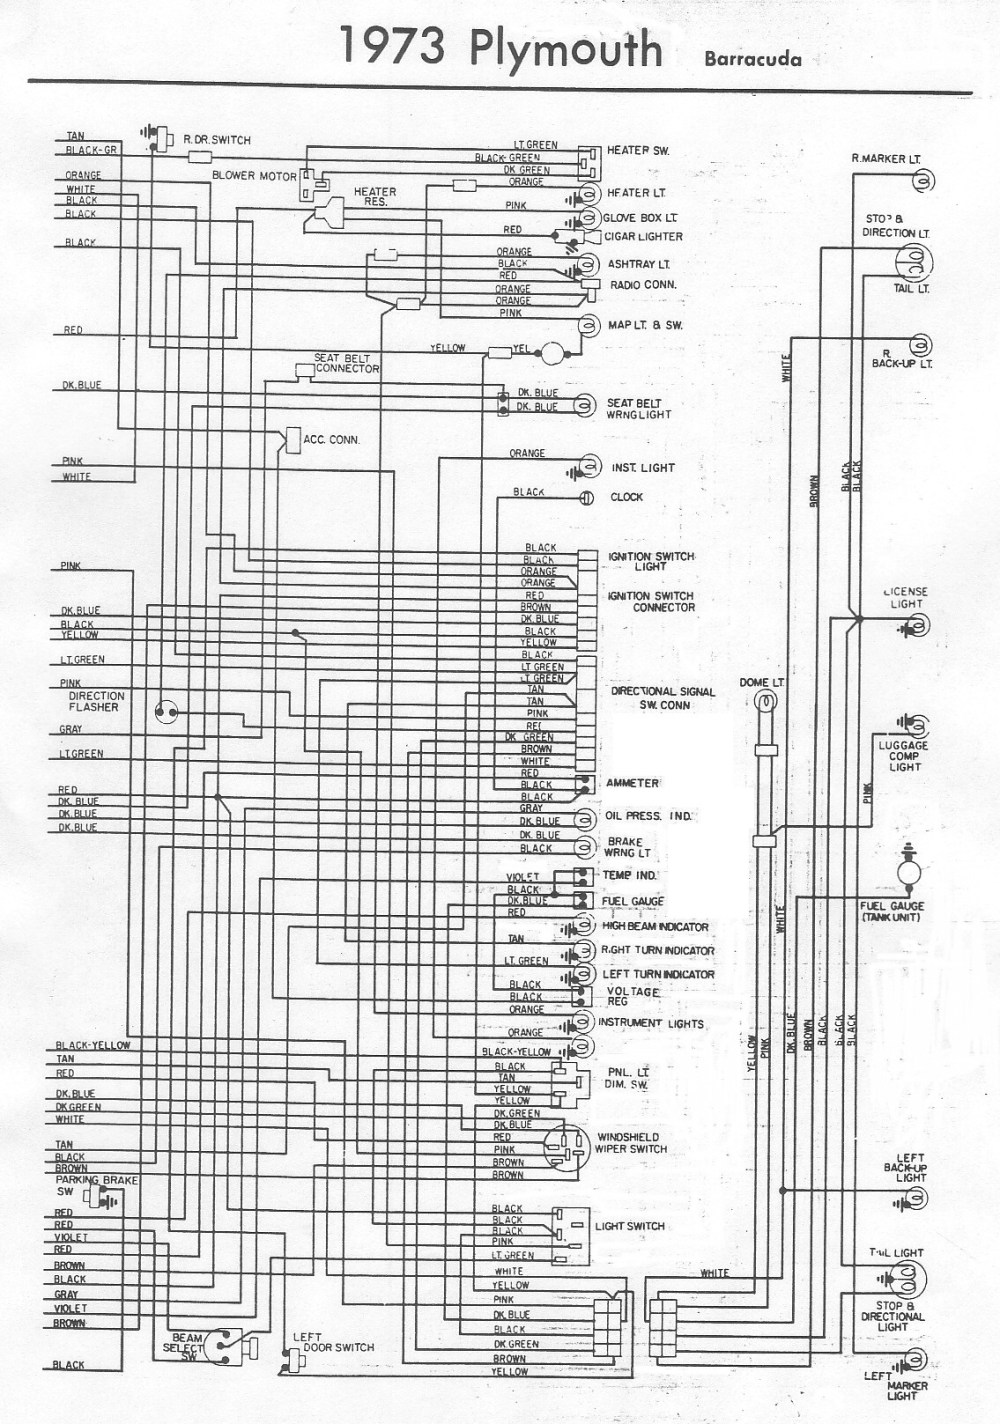 medium resolution of wiring diagram 1965 plymouth belvedere 1973 plymouth 1964 plymouth barracuda 1964 plymouth barracuda